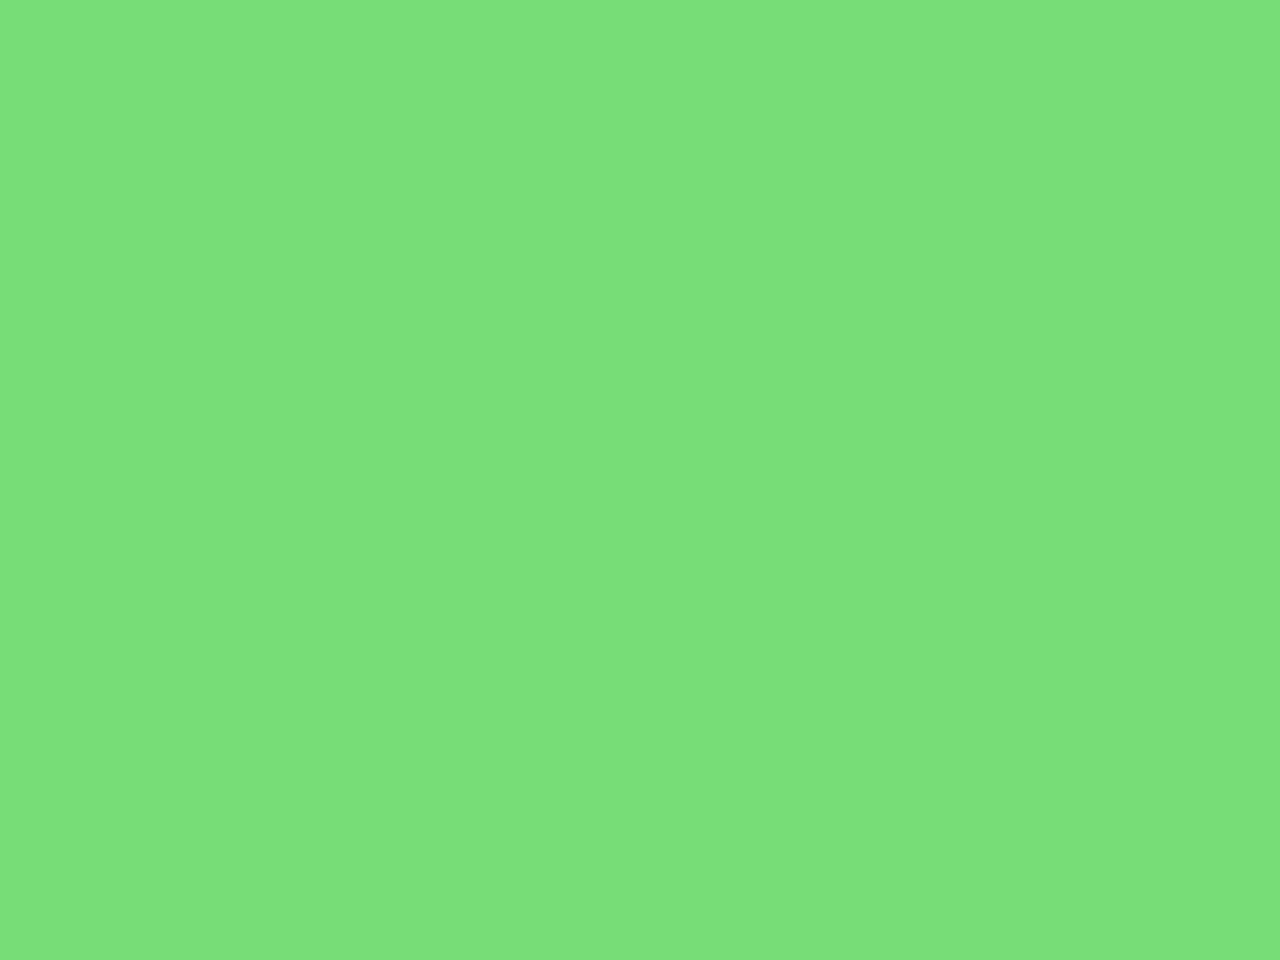 1280x960 Pastel Green Solid Color Background